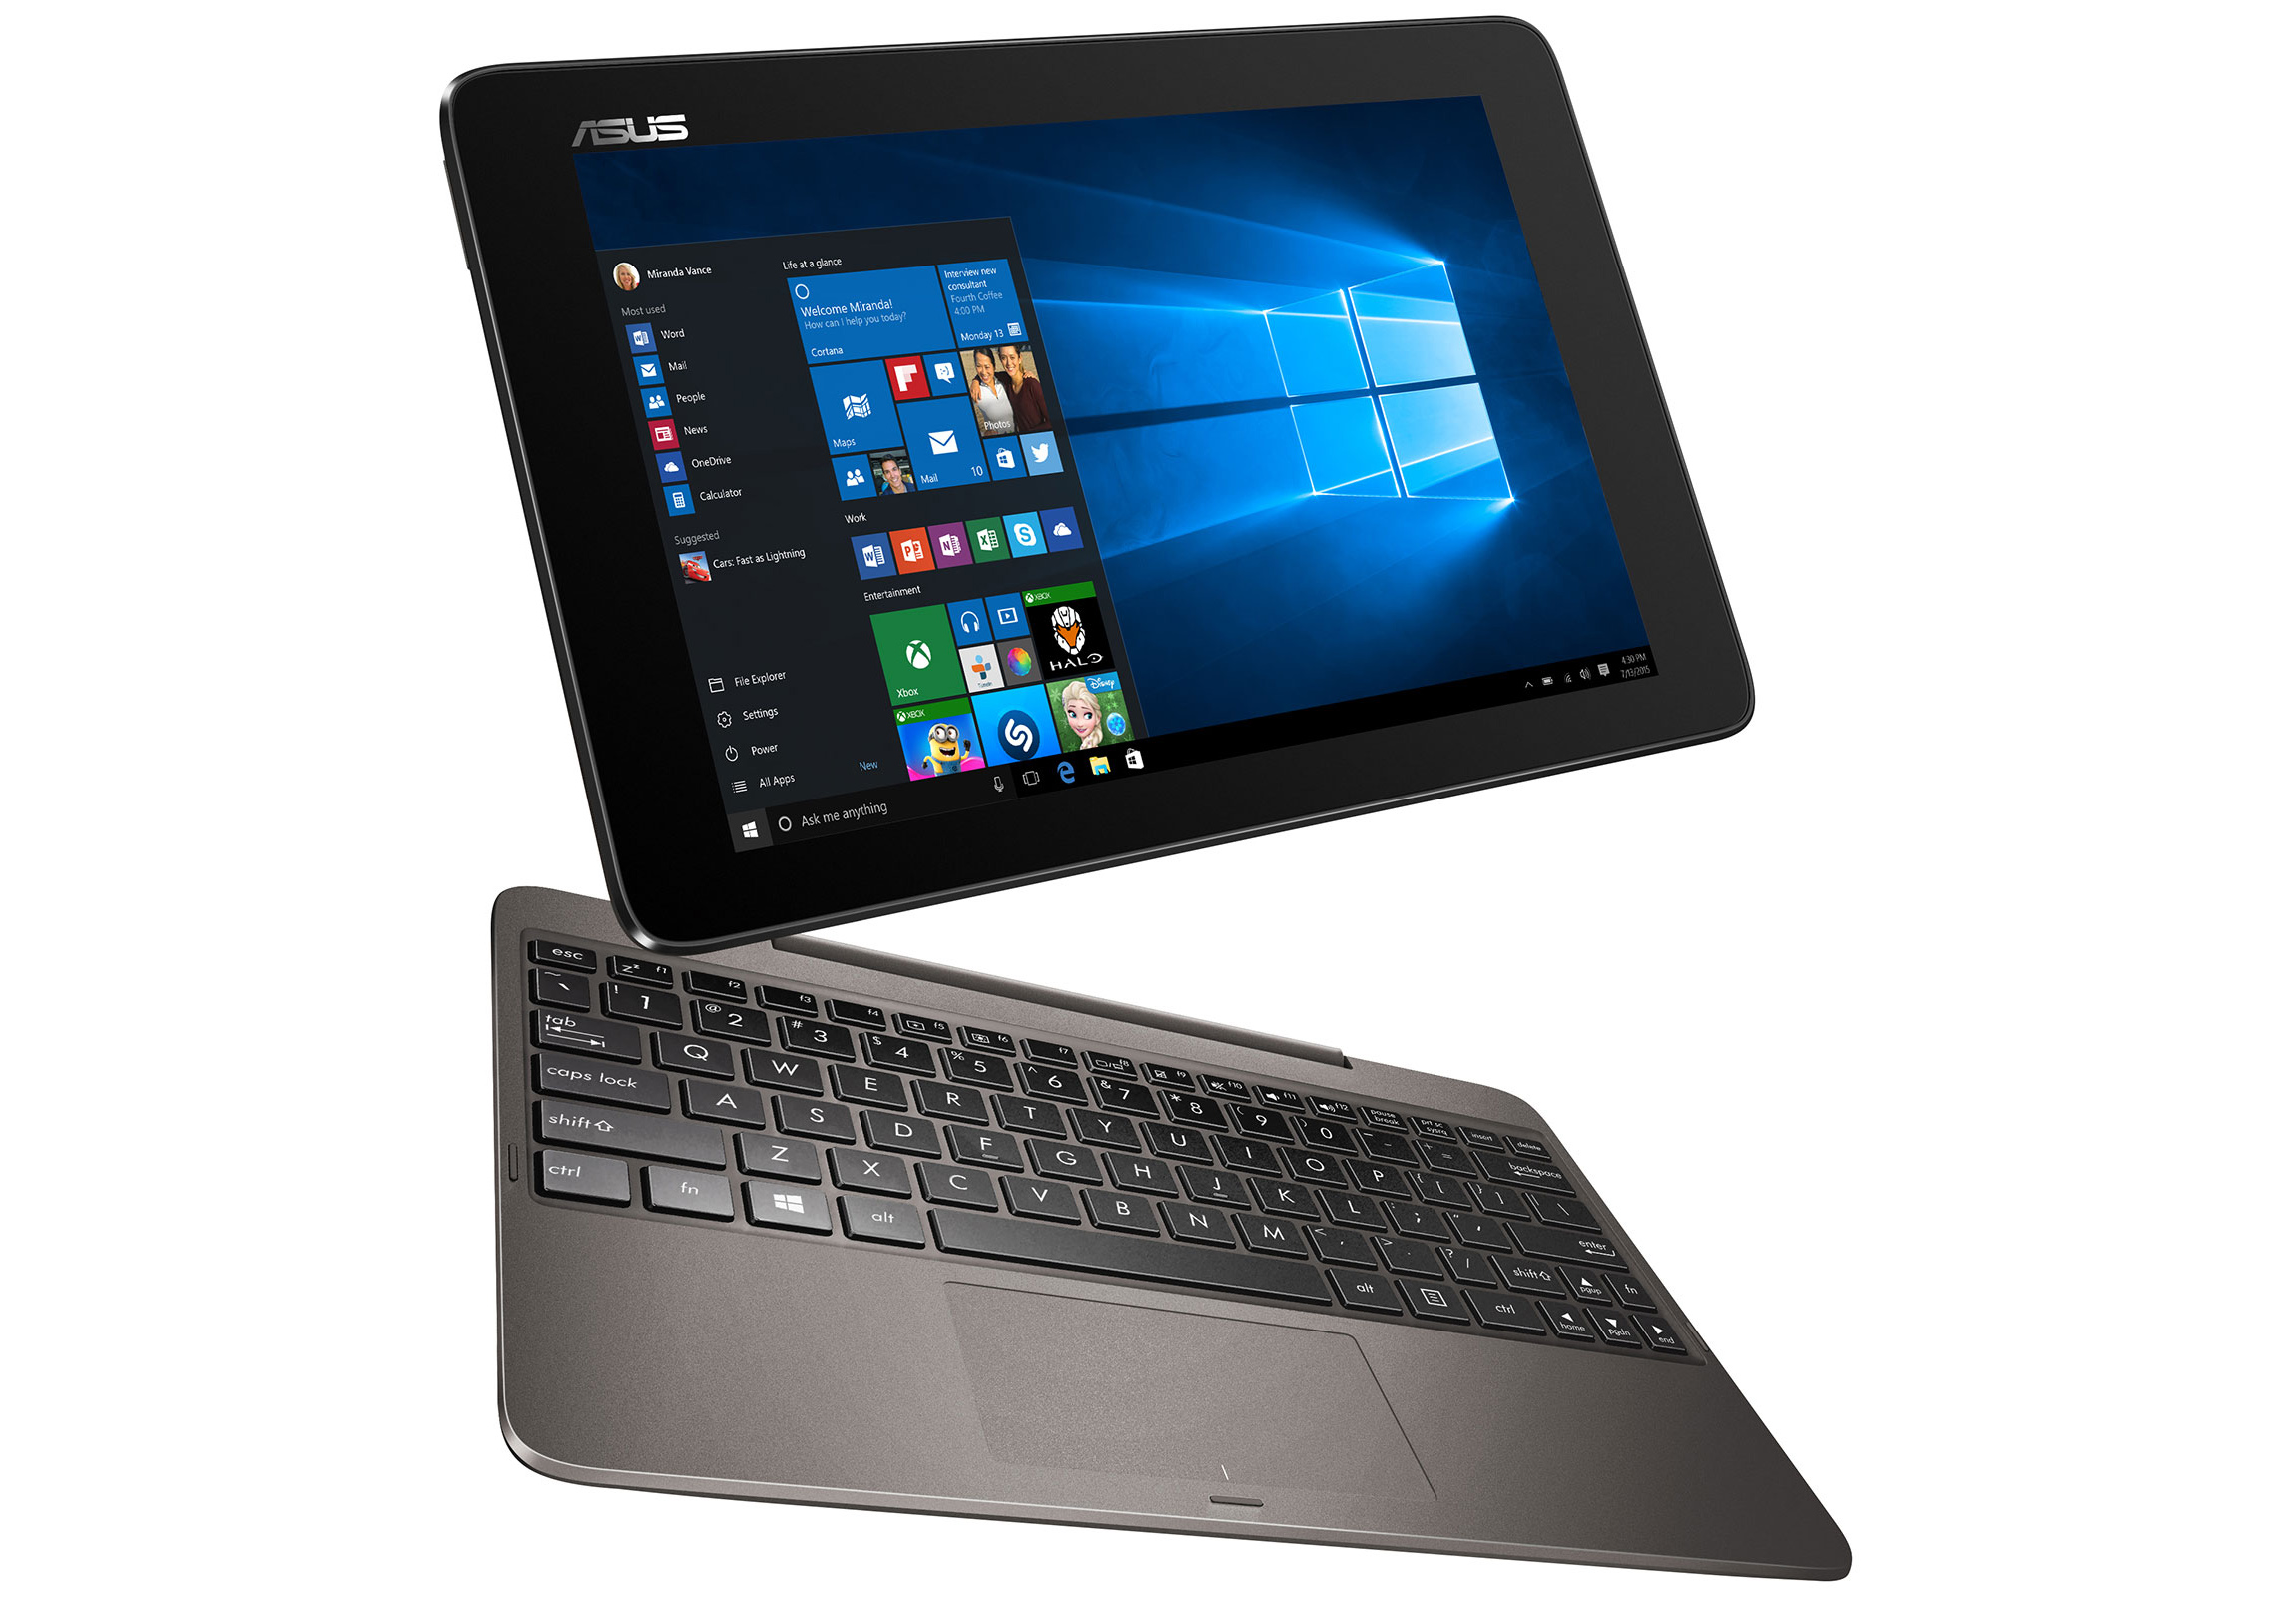 Photo of 10 Windows Tablet, GPS Clock and Wireless Speaker: More Deals on Amazon